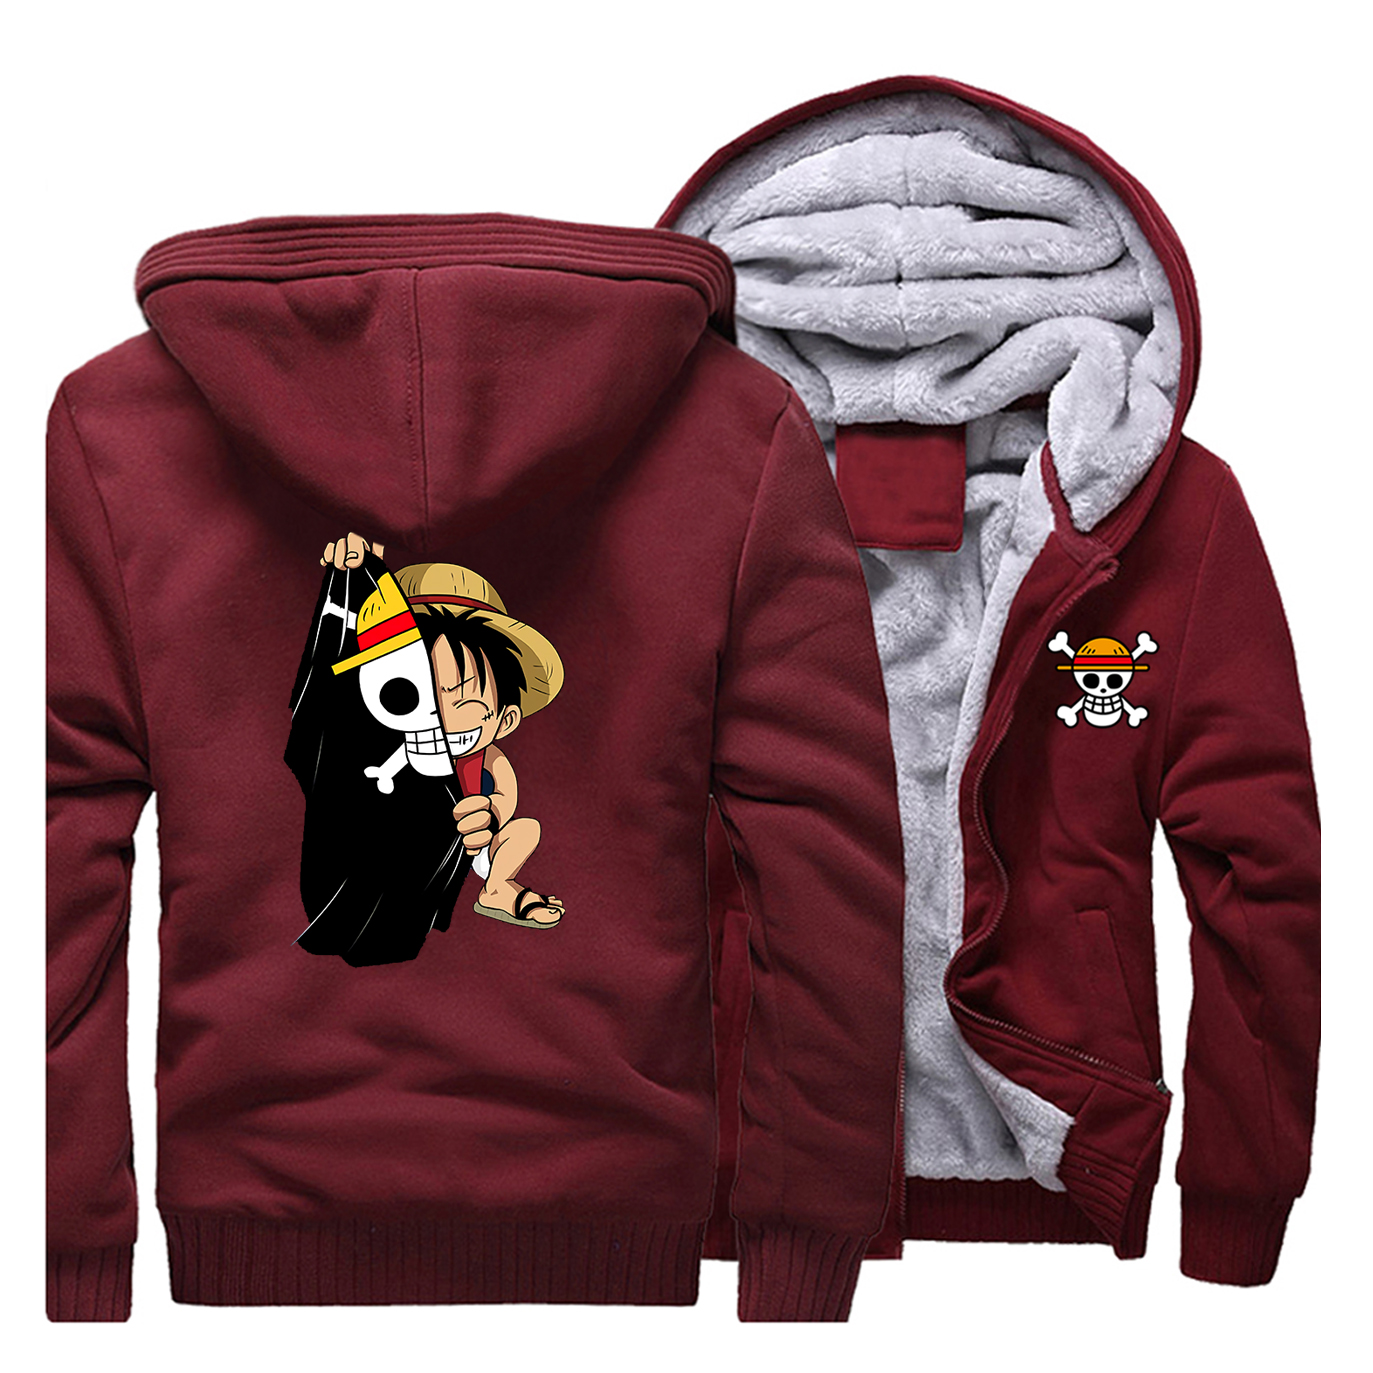 Anime One Piece Luffy Jean Hoodie Coat Hooded Jacket Loose Casual Hiphop Outwear